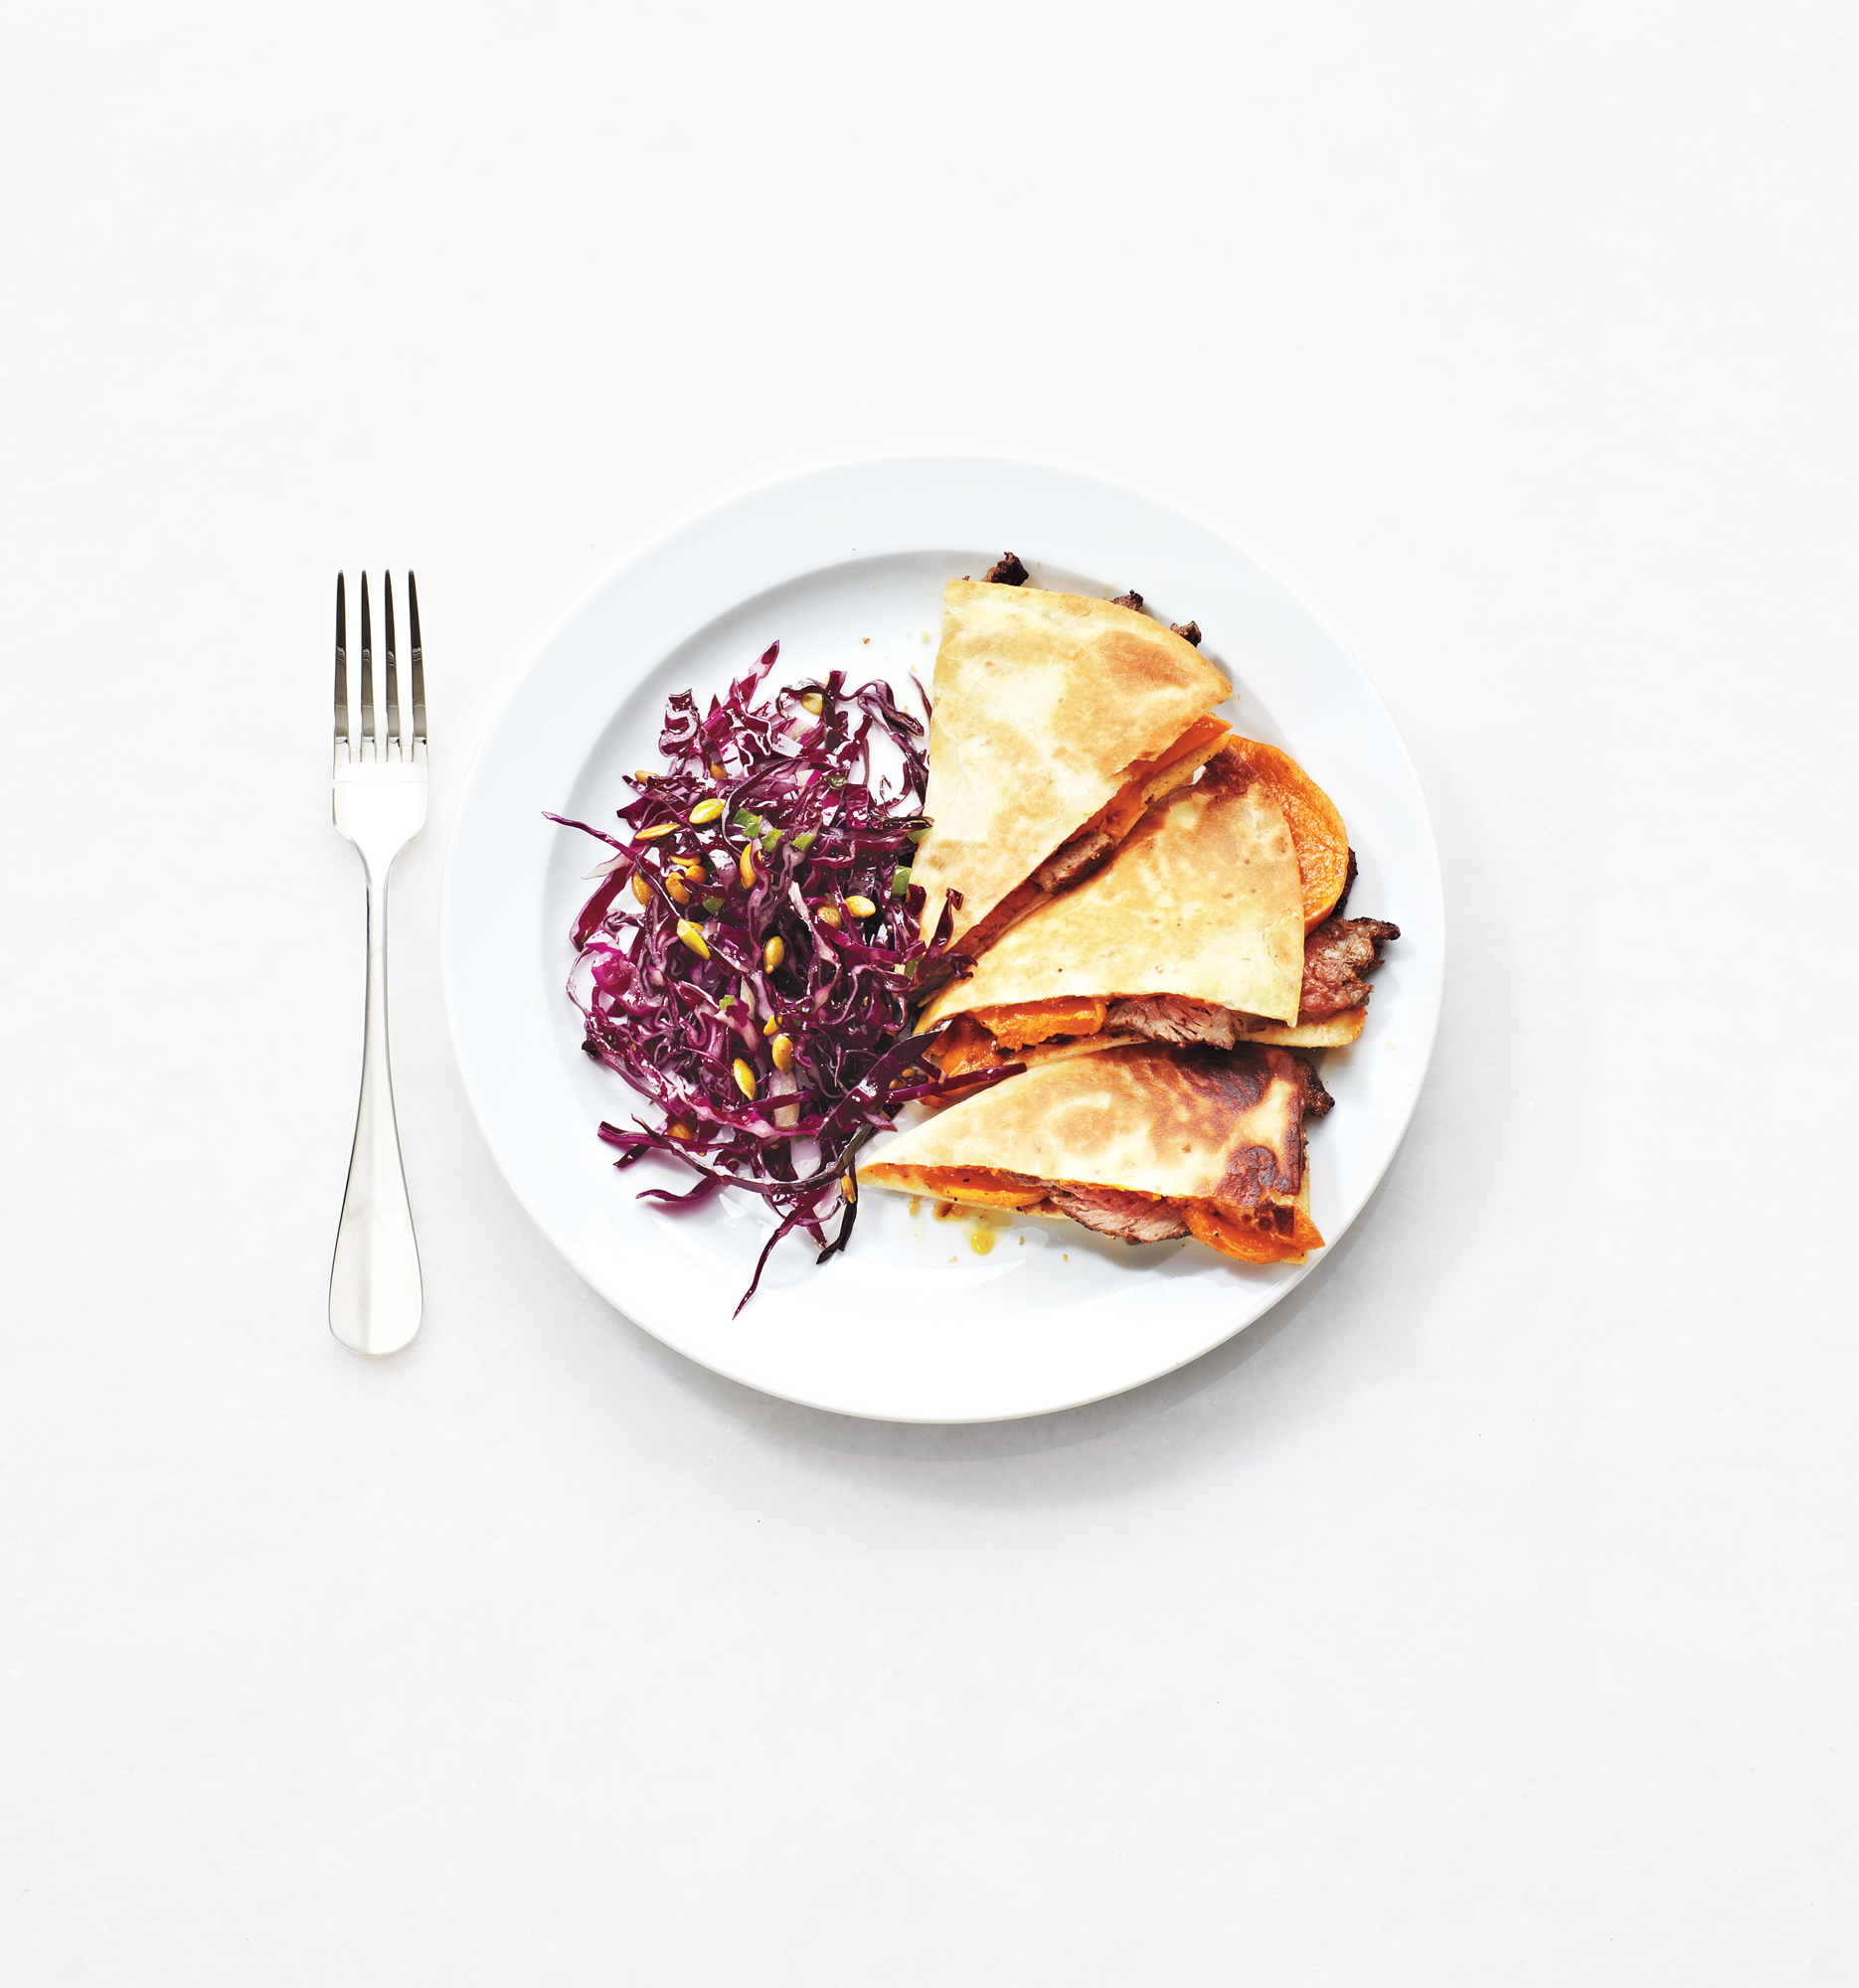 Butternut Squash and Steak Quesadillas with Red Cabbage Slaw